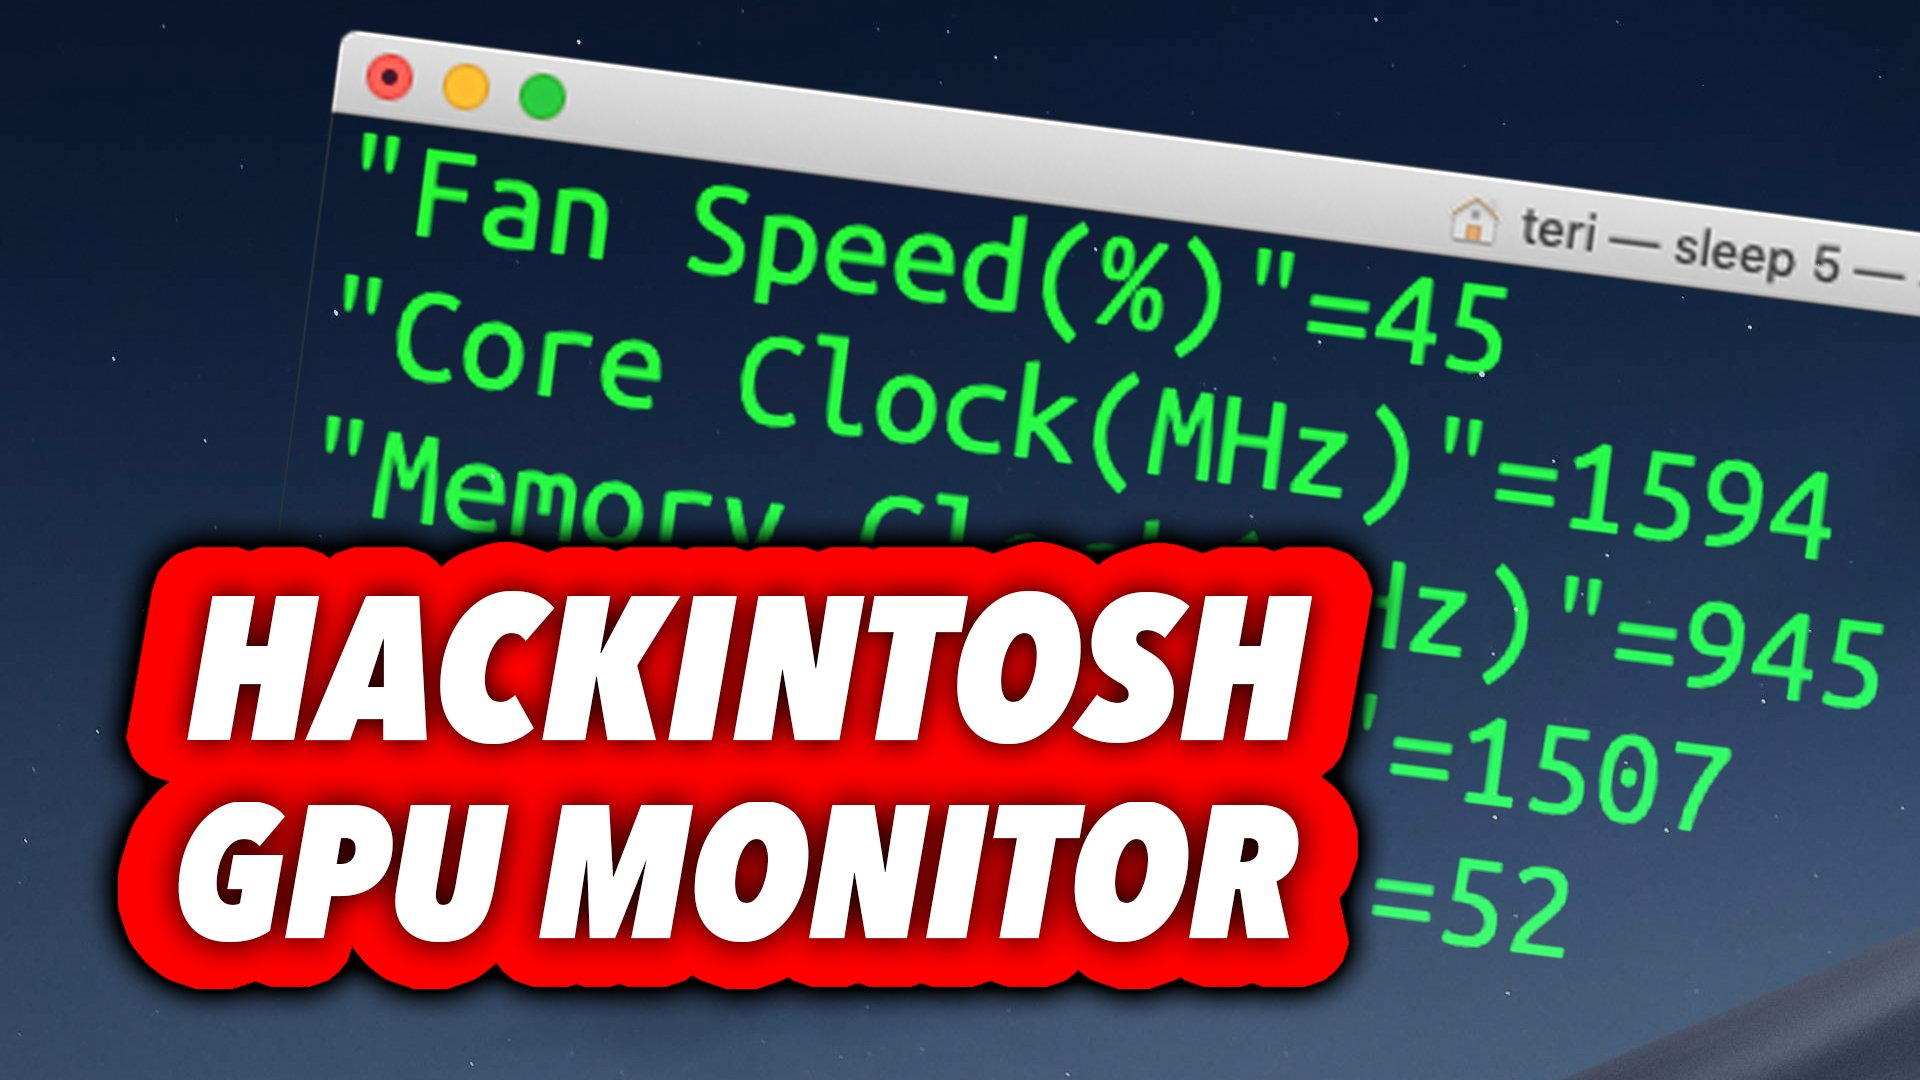 How To Monitor Your GPU in macOS HACKINTOSH for FREE !!! - MORGONAUT